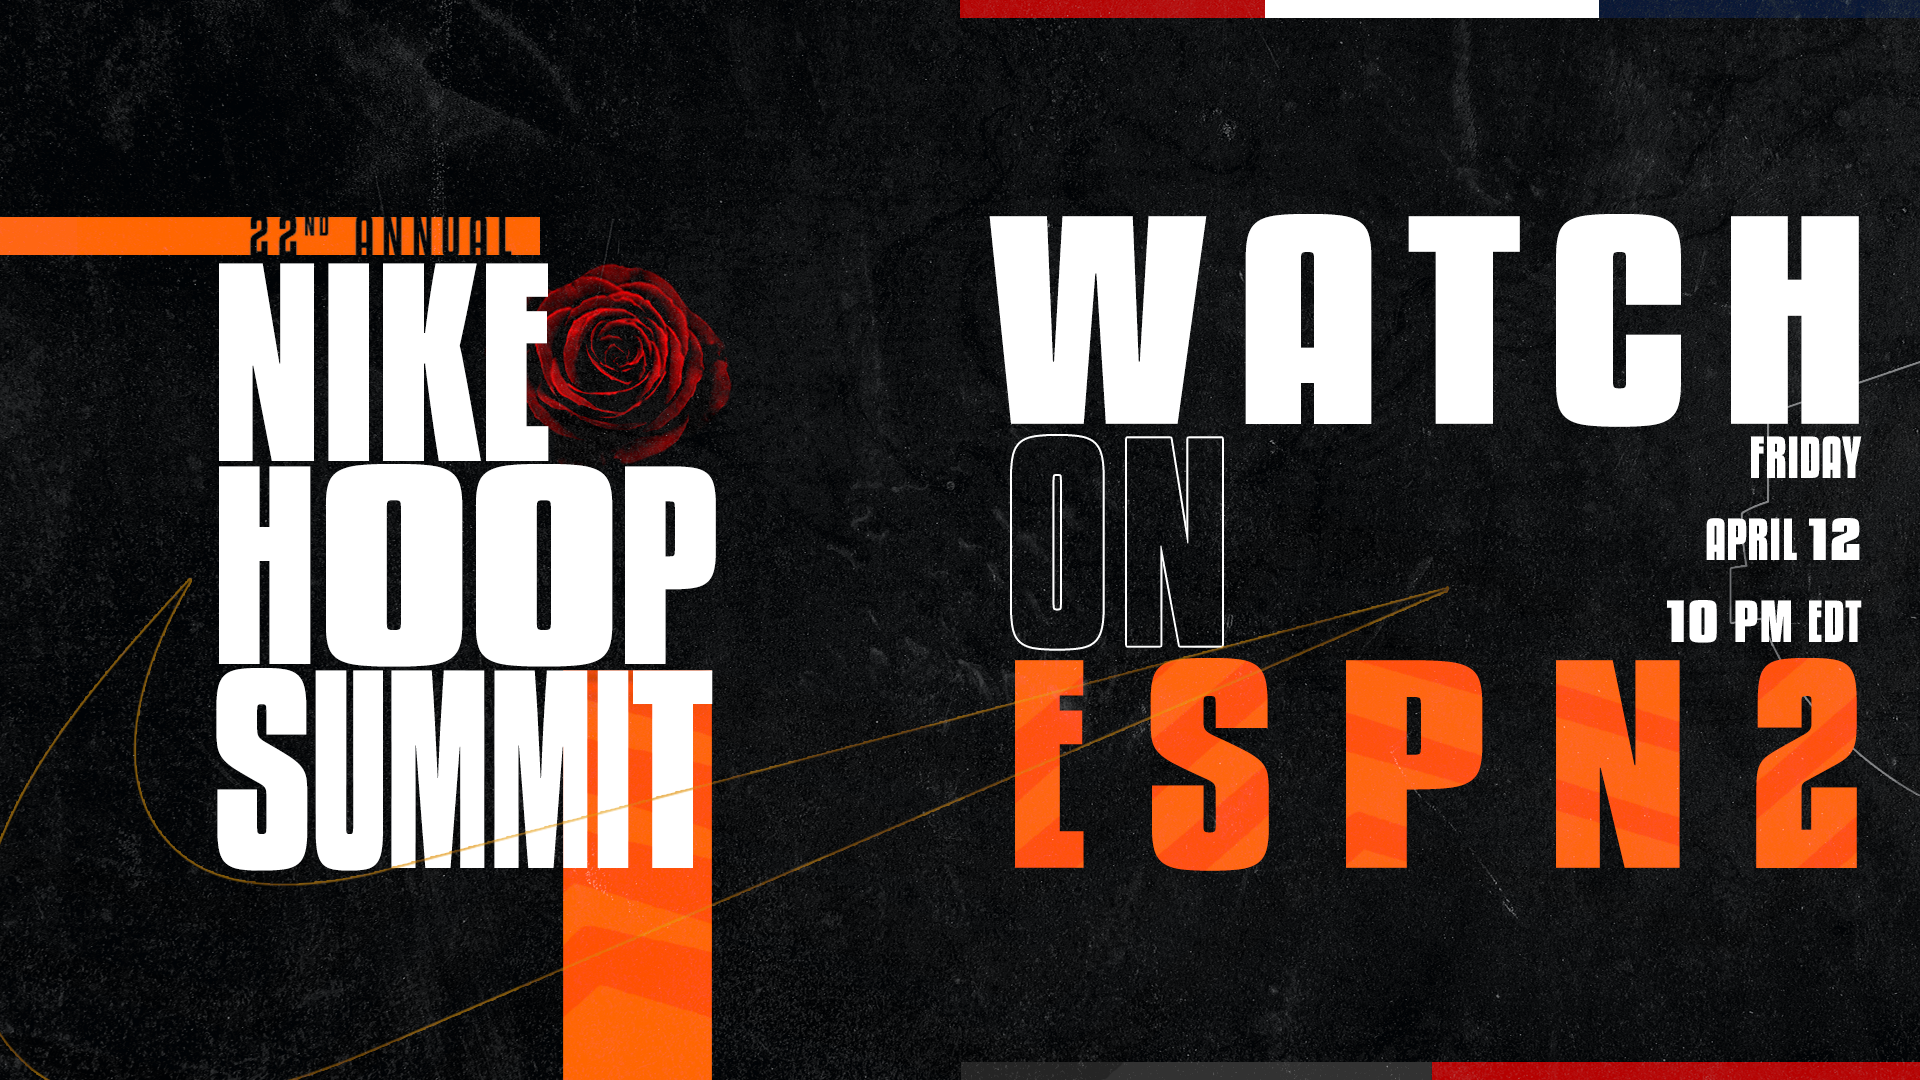 2019 Nike Hoop Summit